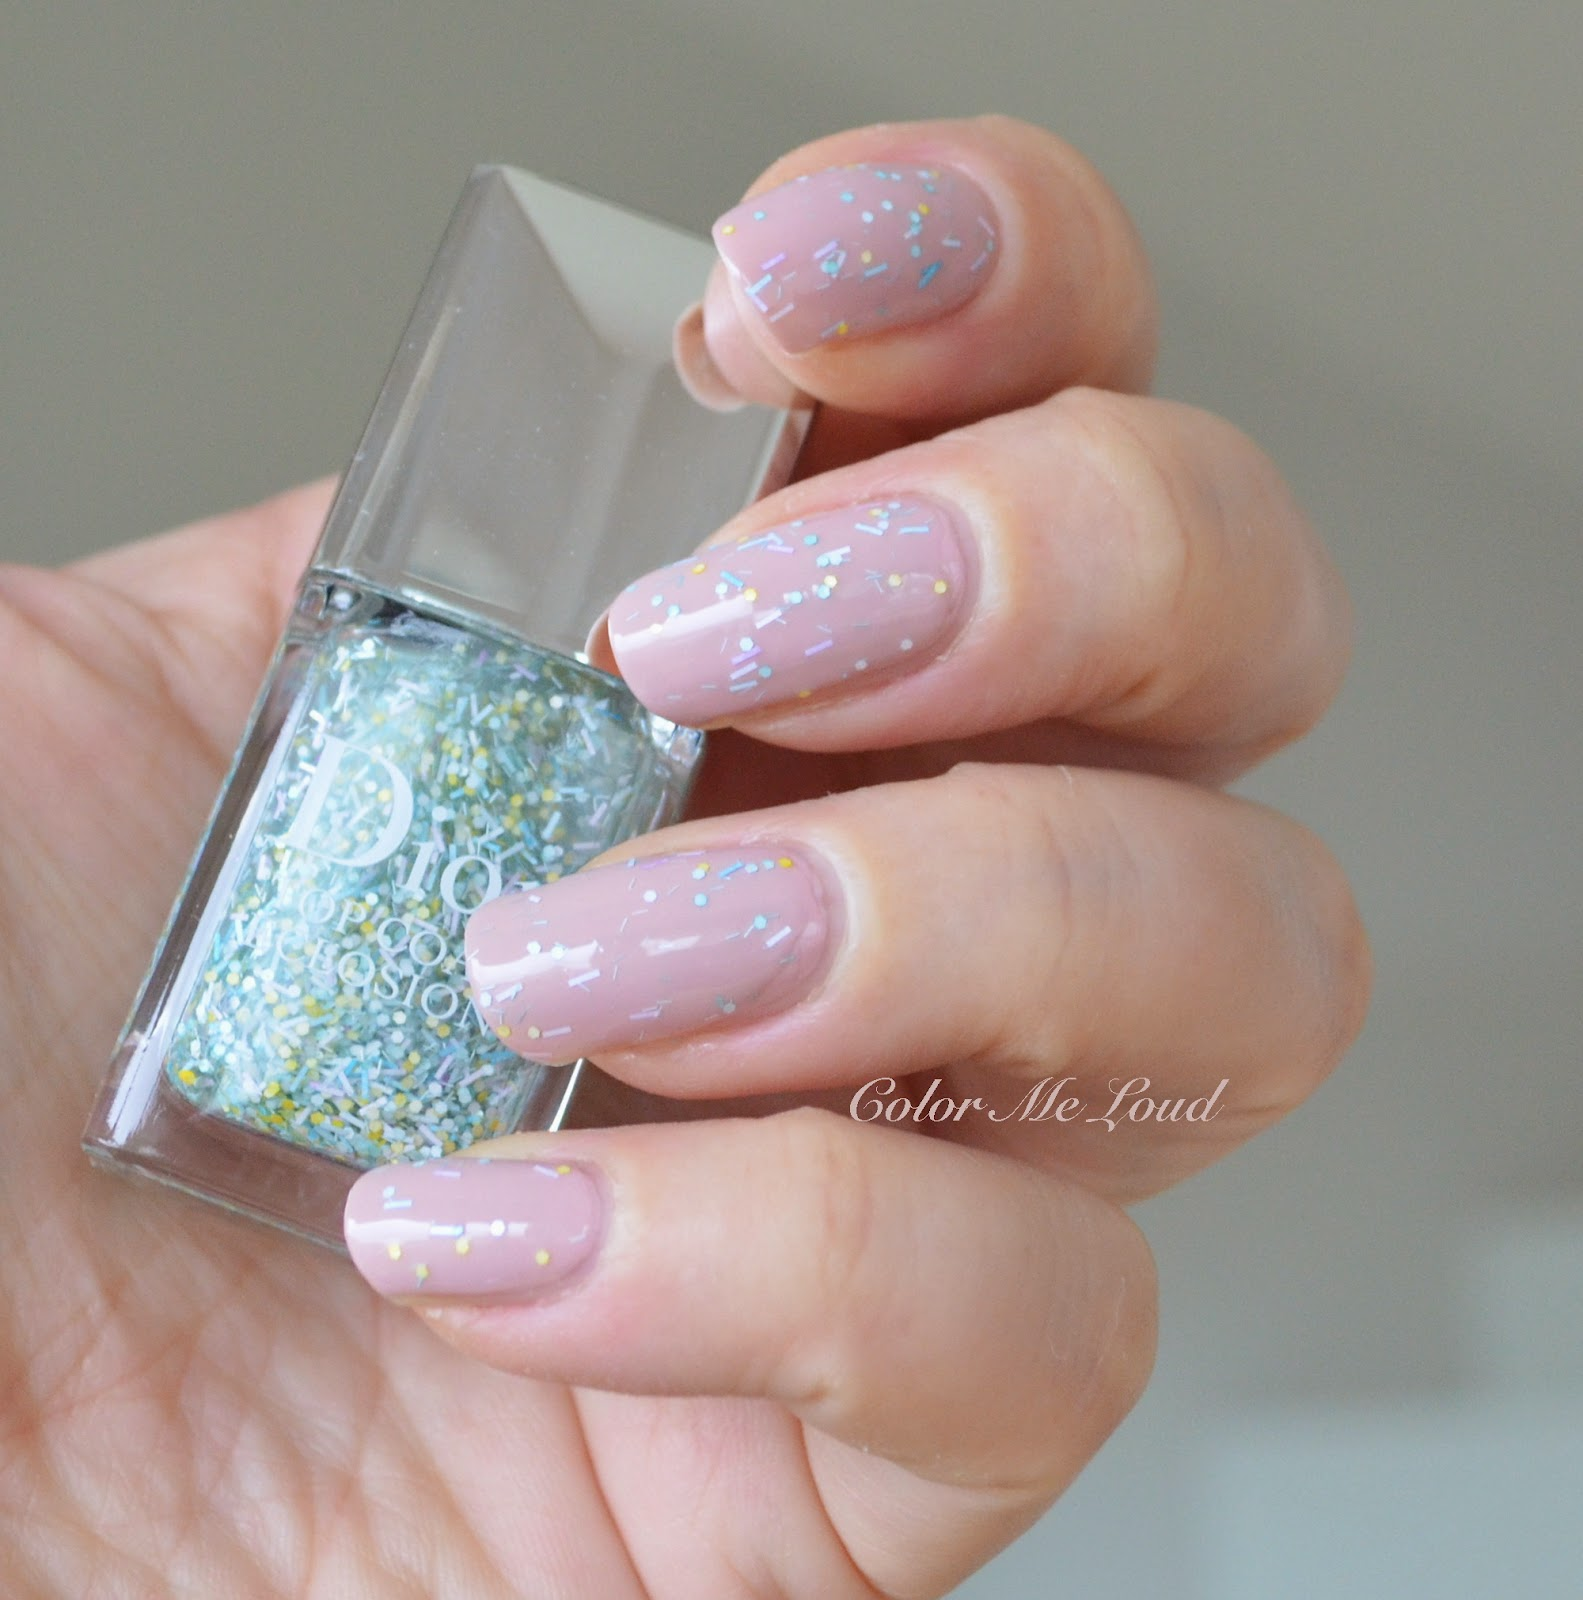 dior vernis 294 lady 244 majesty 660 glory and eclosion top